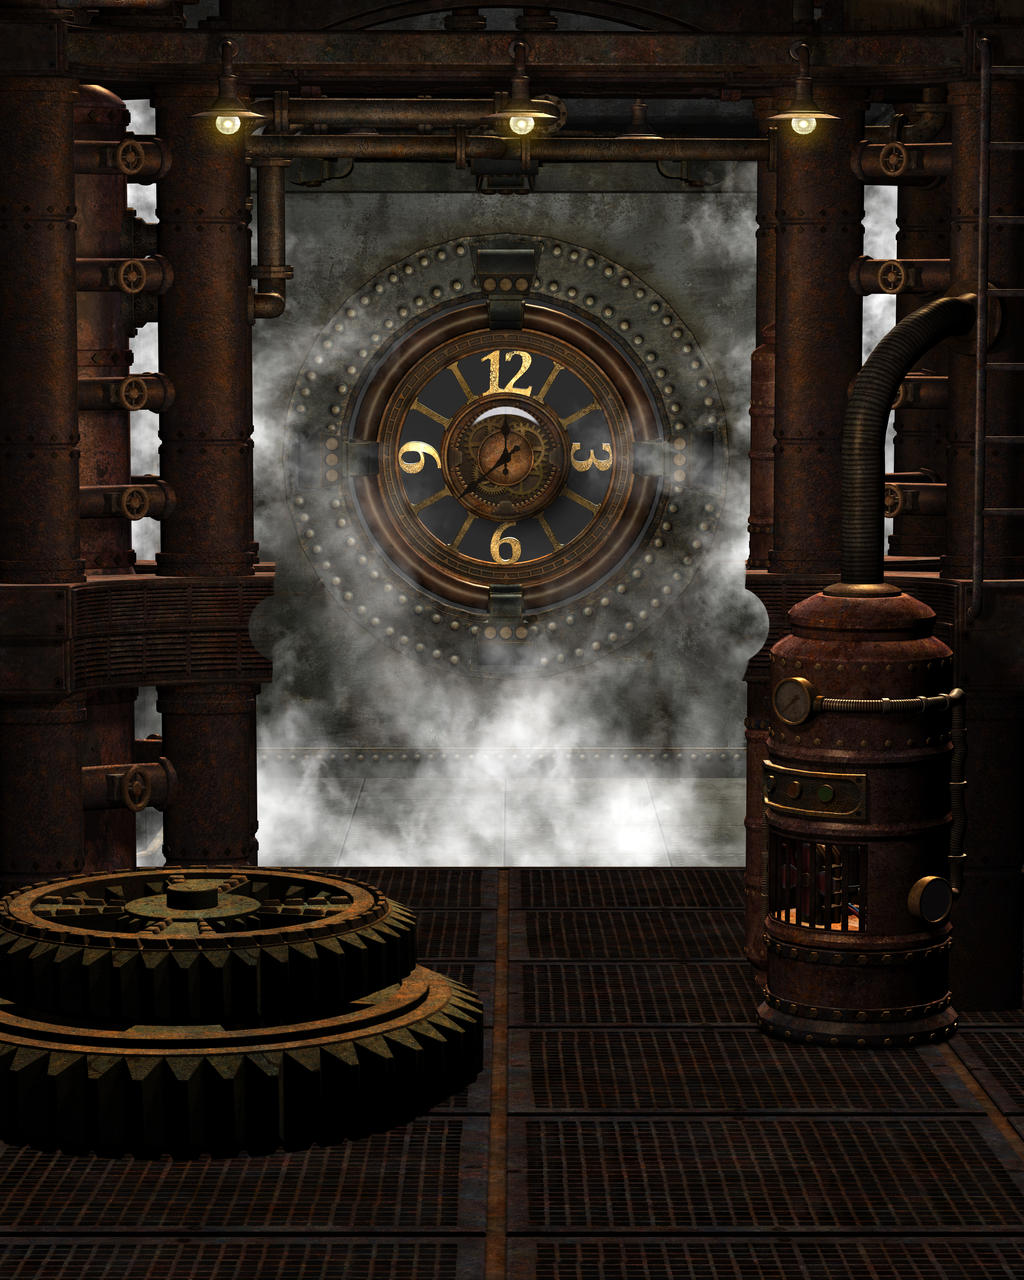 steampunk background 6 by kachinadoll on deviantart. Black Bedroom Furniture Sets. Home Design Ideas